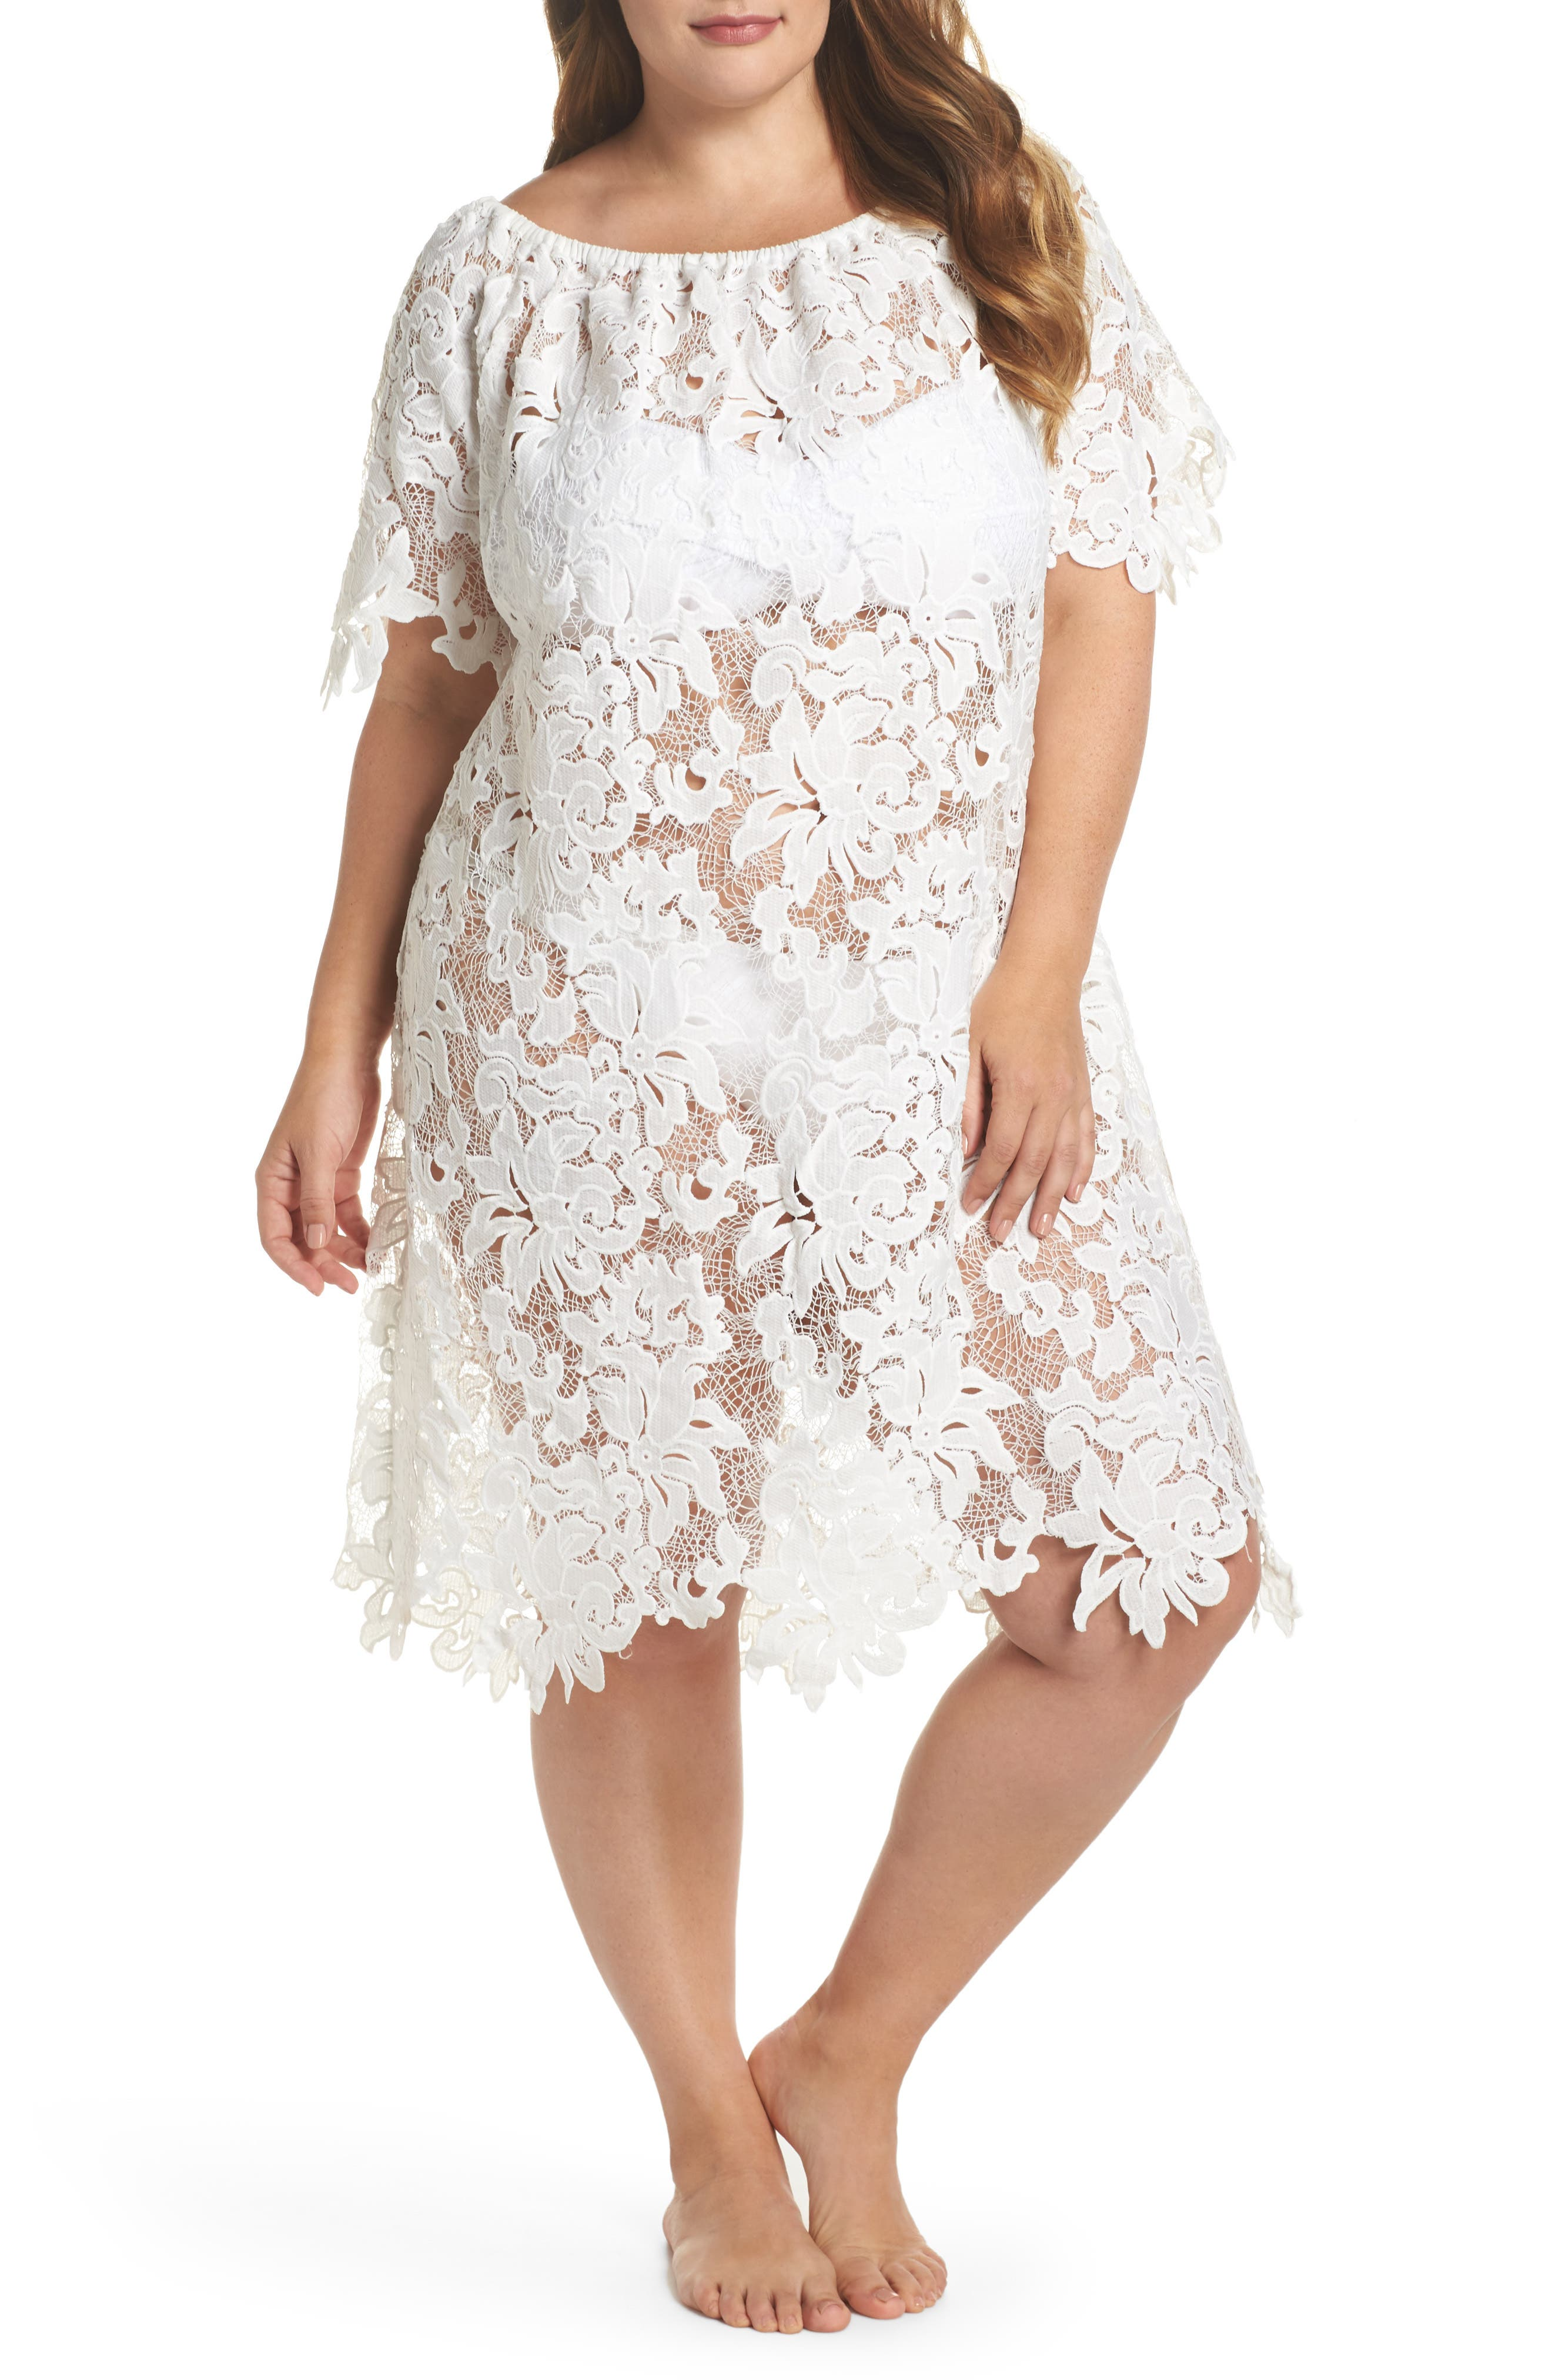 Ode Lace Cover-Up Dress,                             Main thumbnail 1, color,                             100